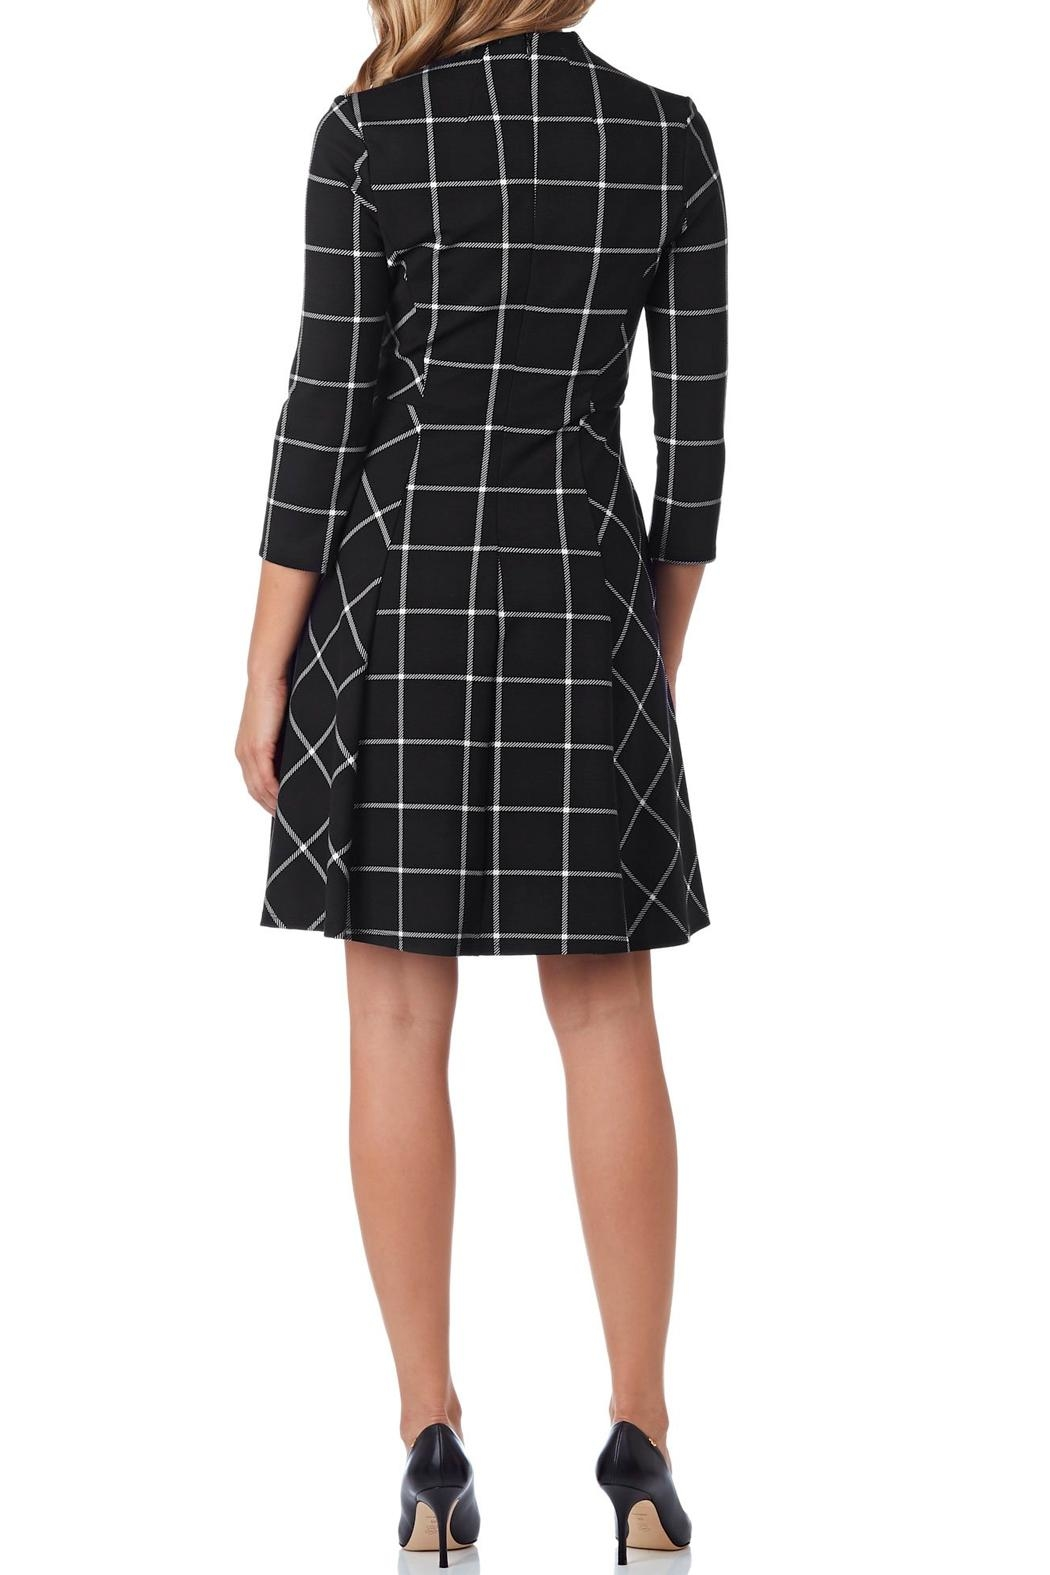 Jude Connally Kennedy Ponte Dress - Front Full Image